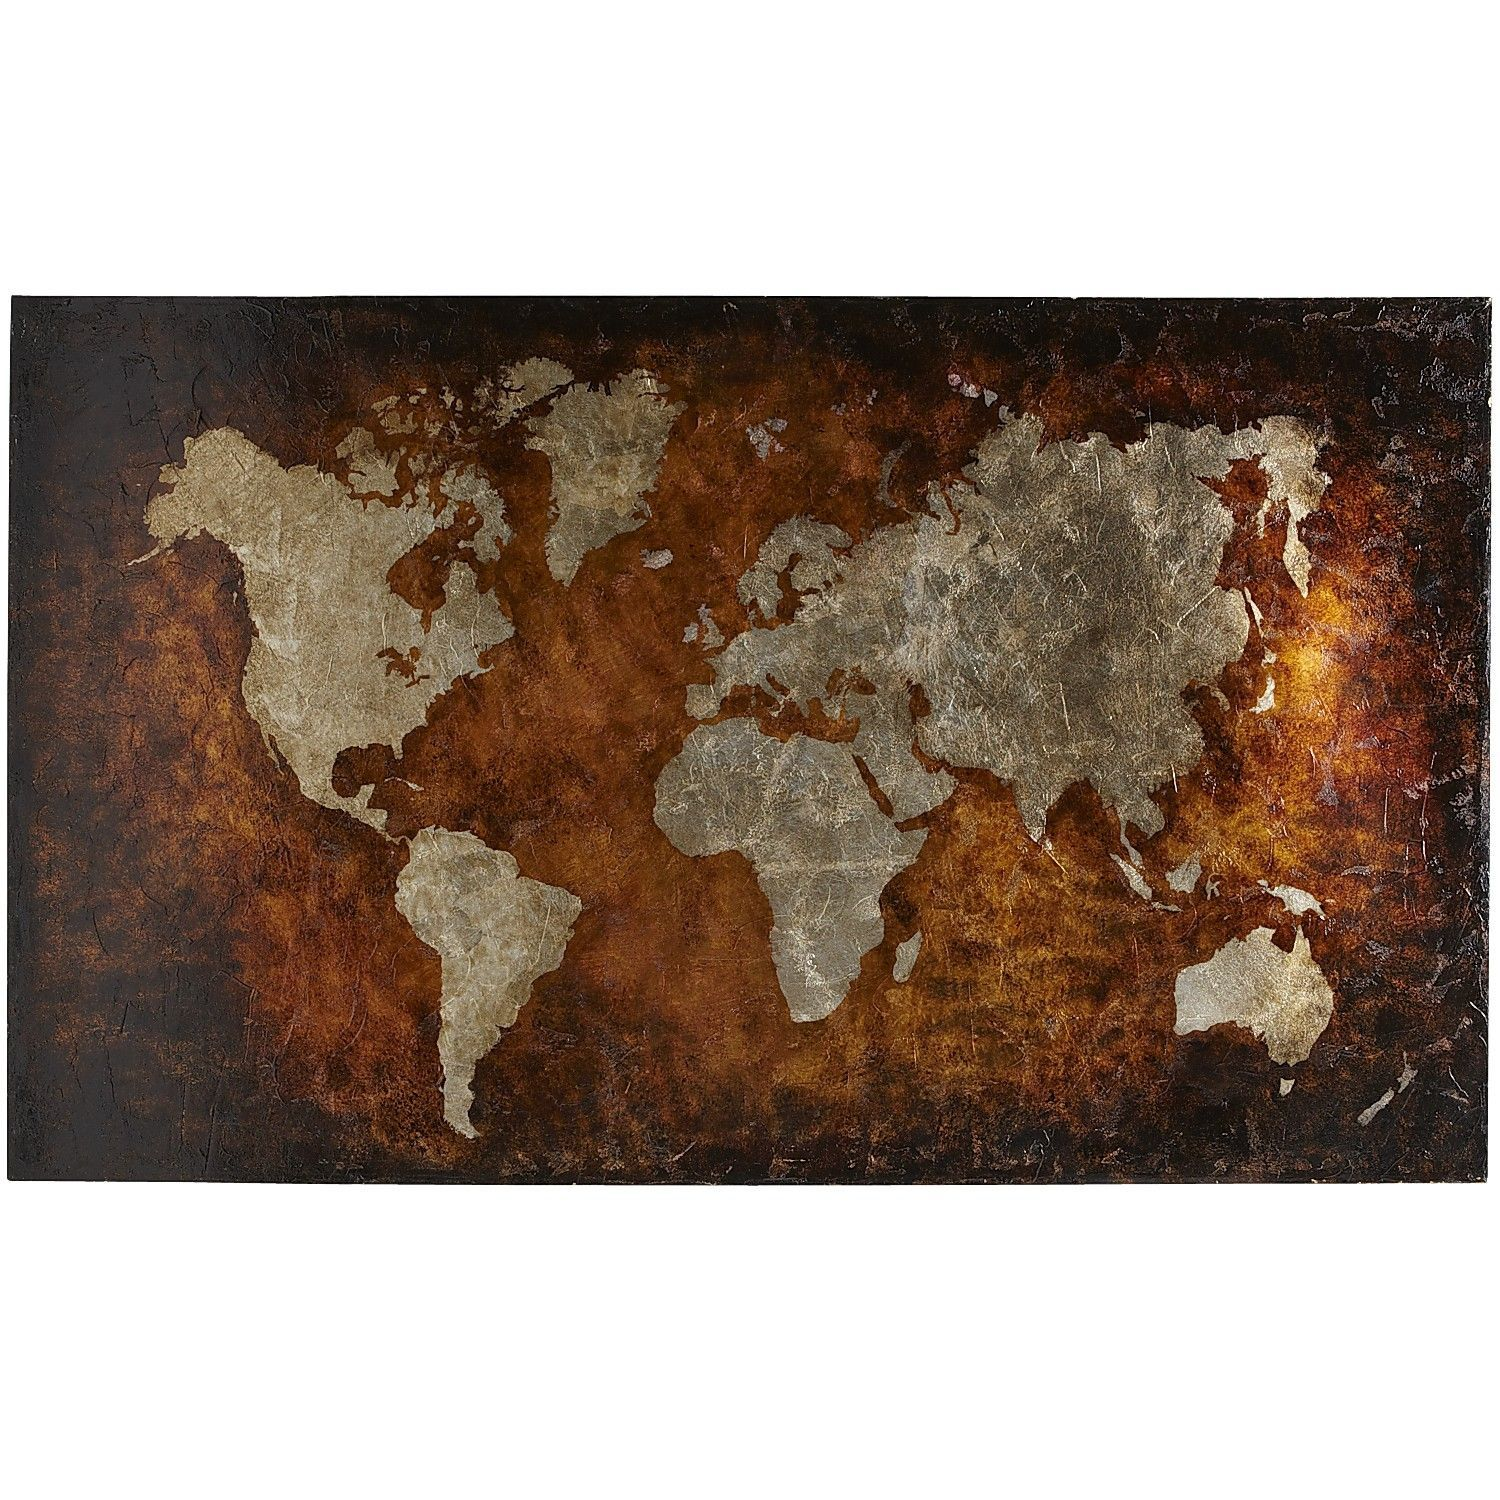 Pier 1 world map art bronze map it pinterest living room pier 1 world map art bronze gumiabroncs